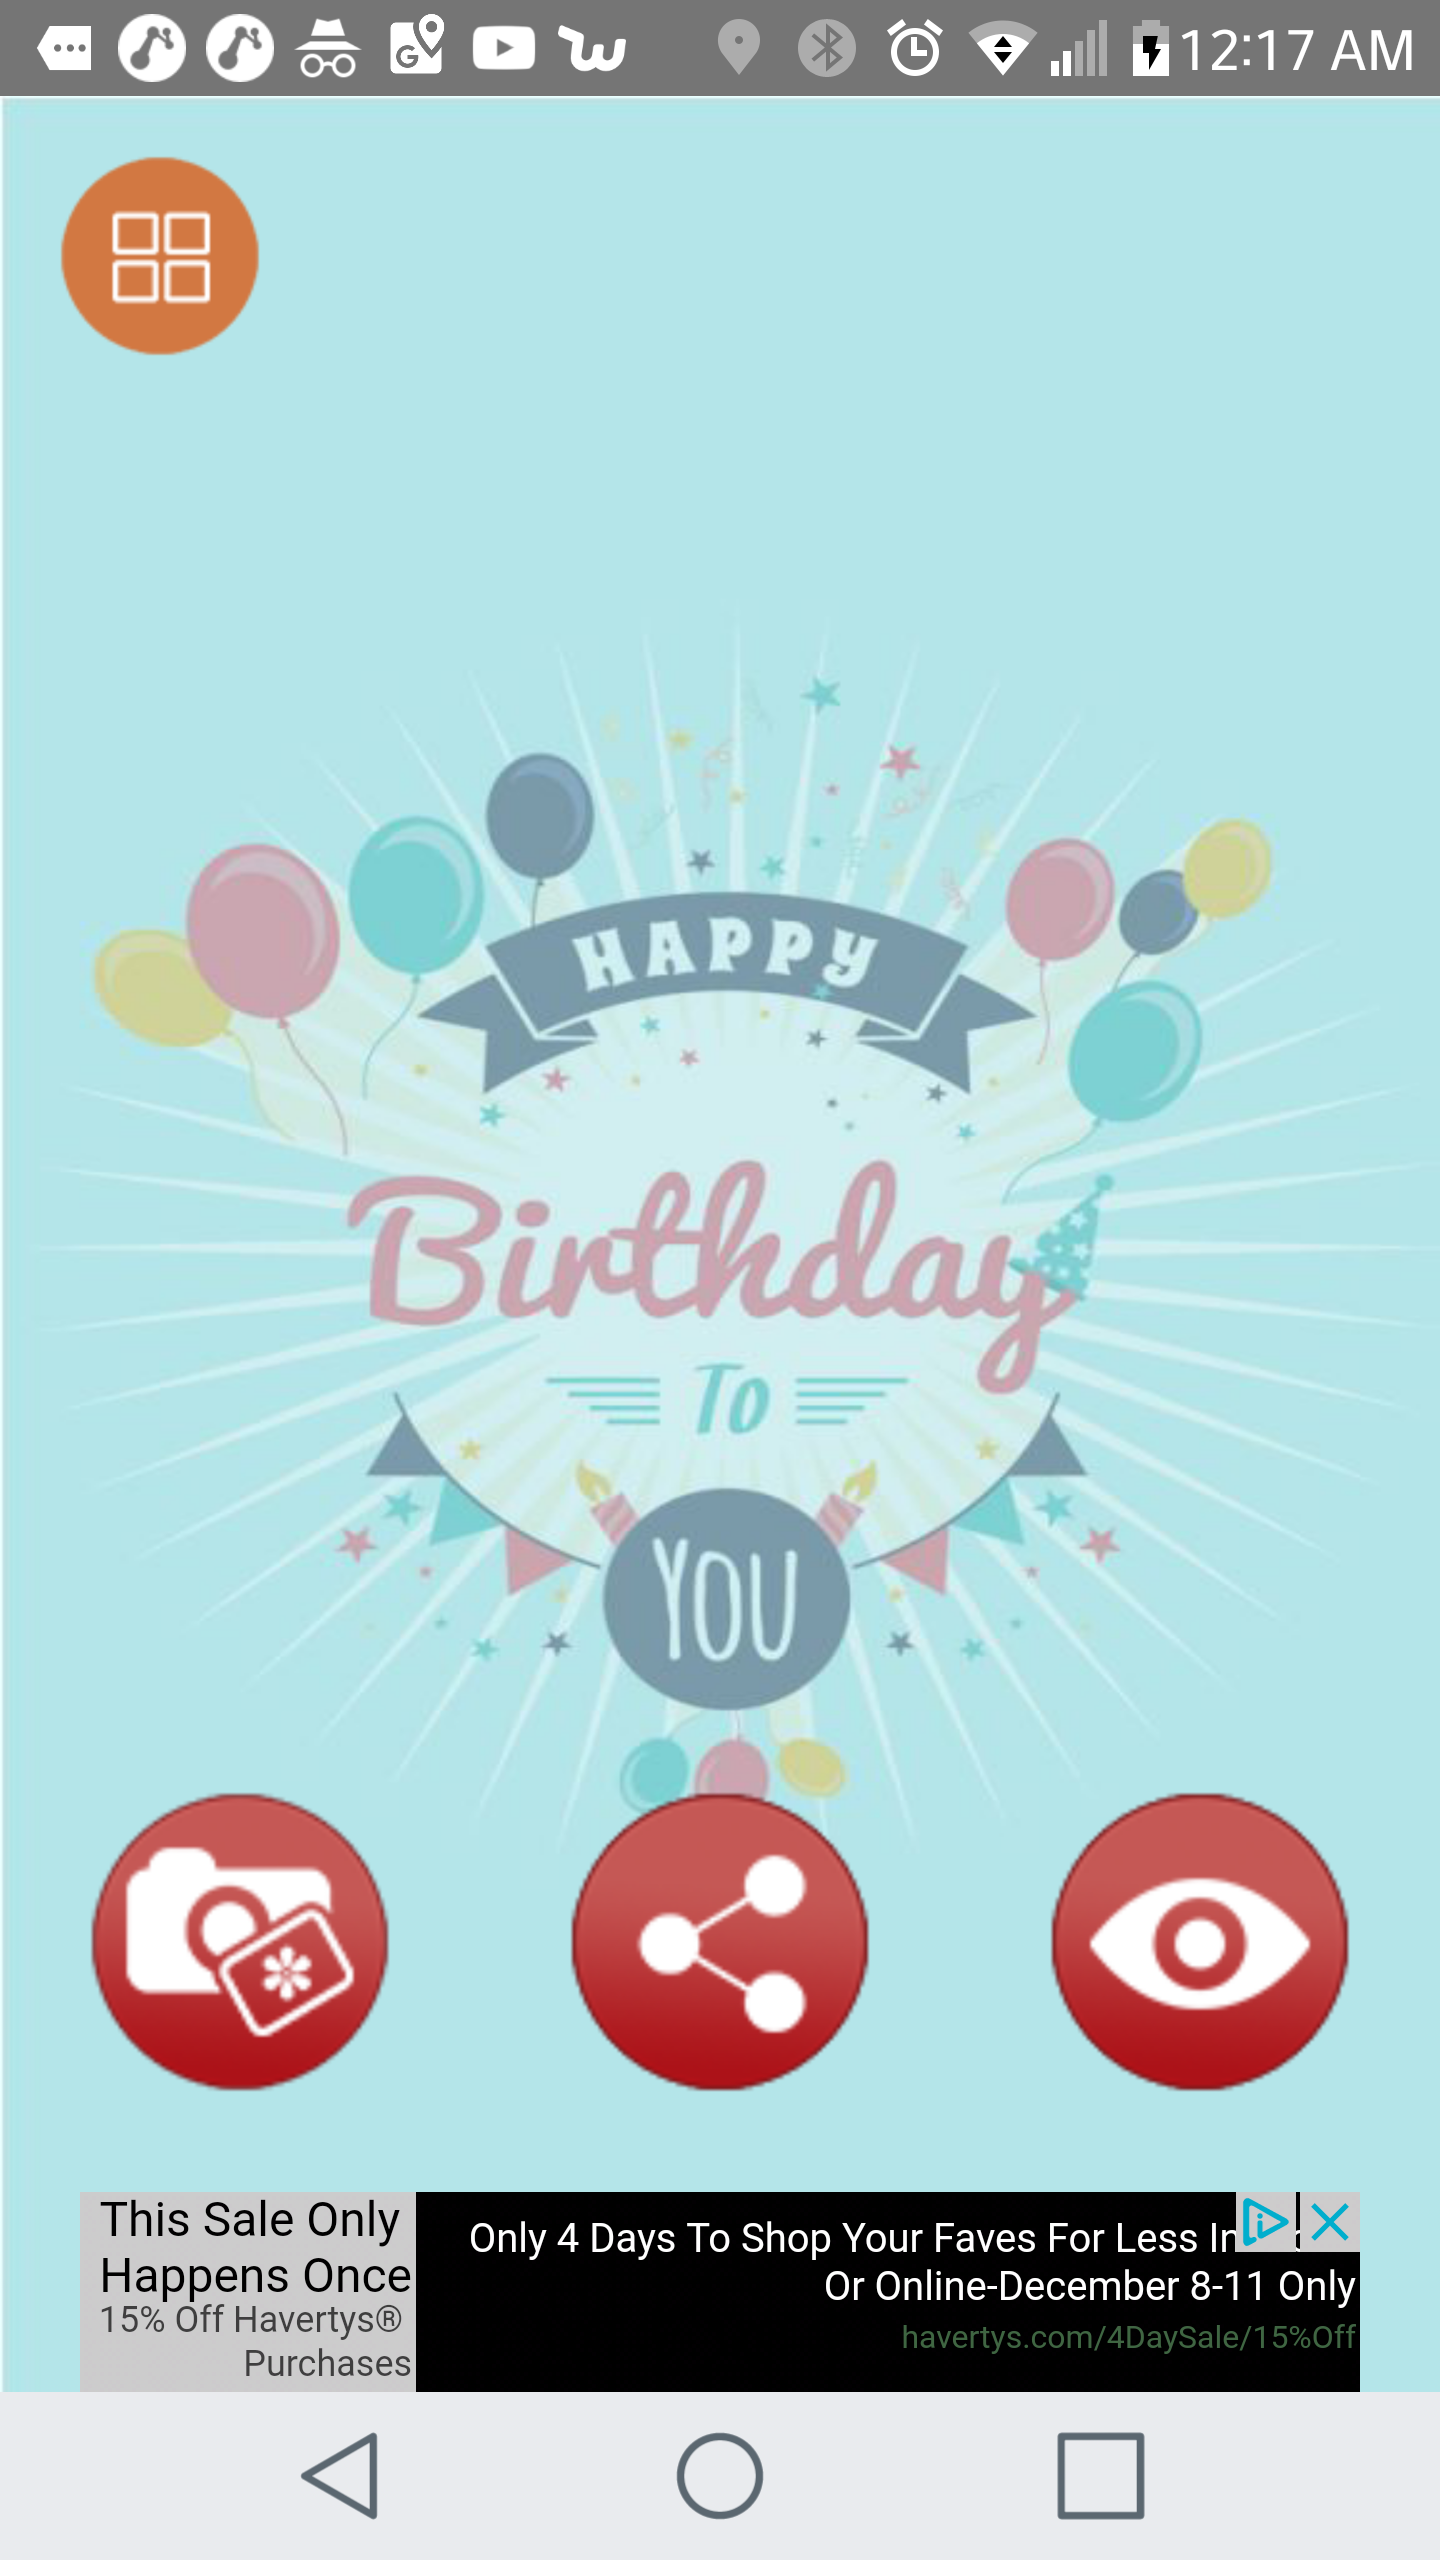 Happy Birthday Wallpaper Maker By Karmainfotech Codecanyon